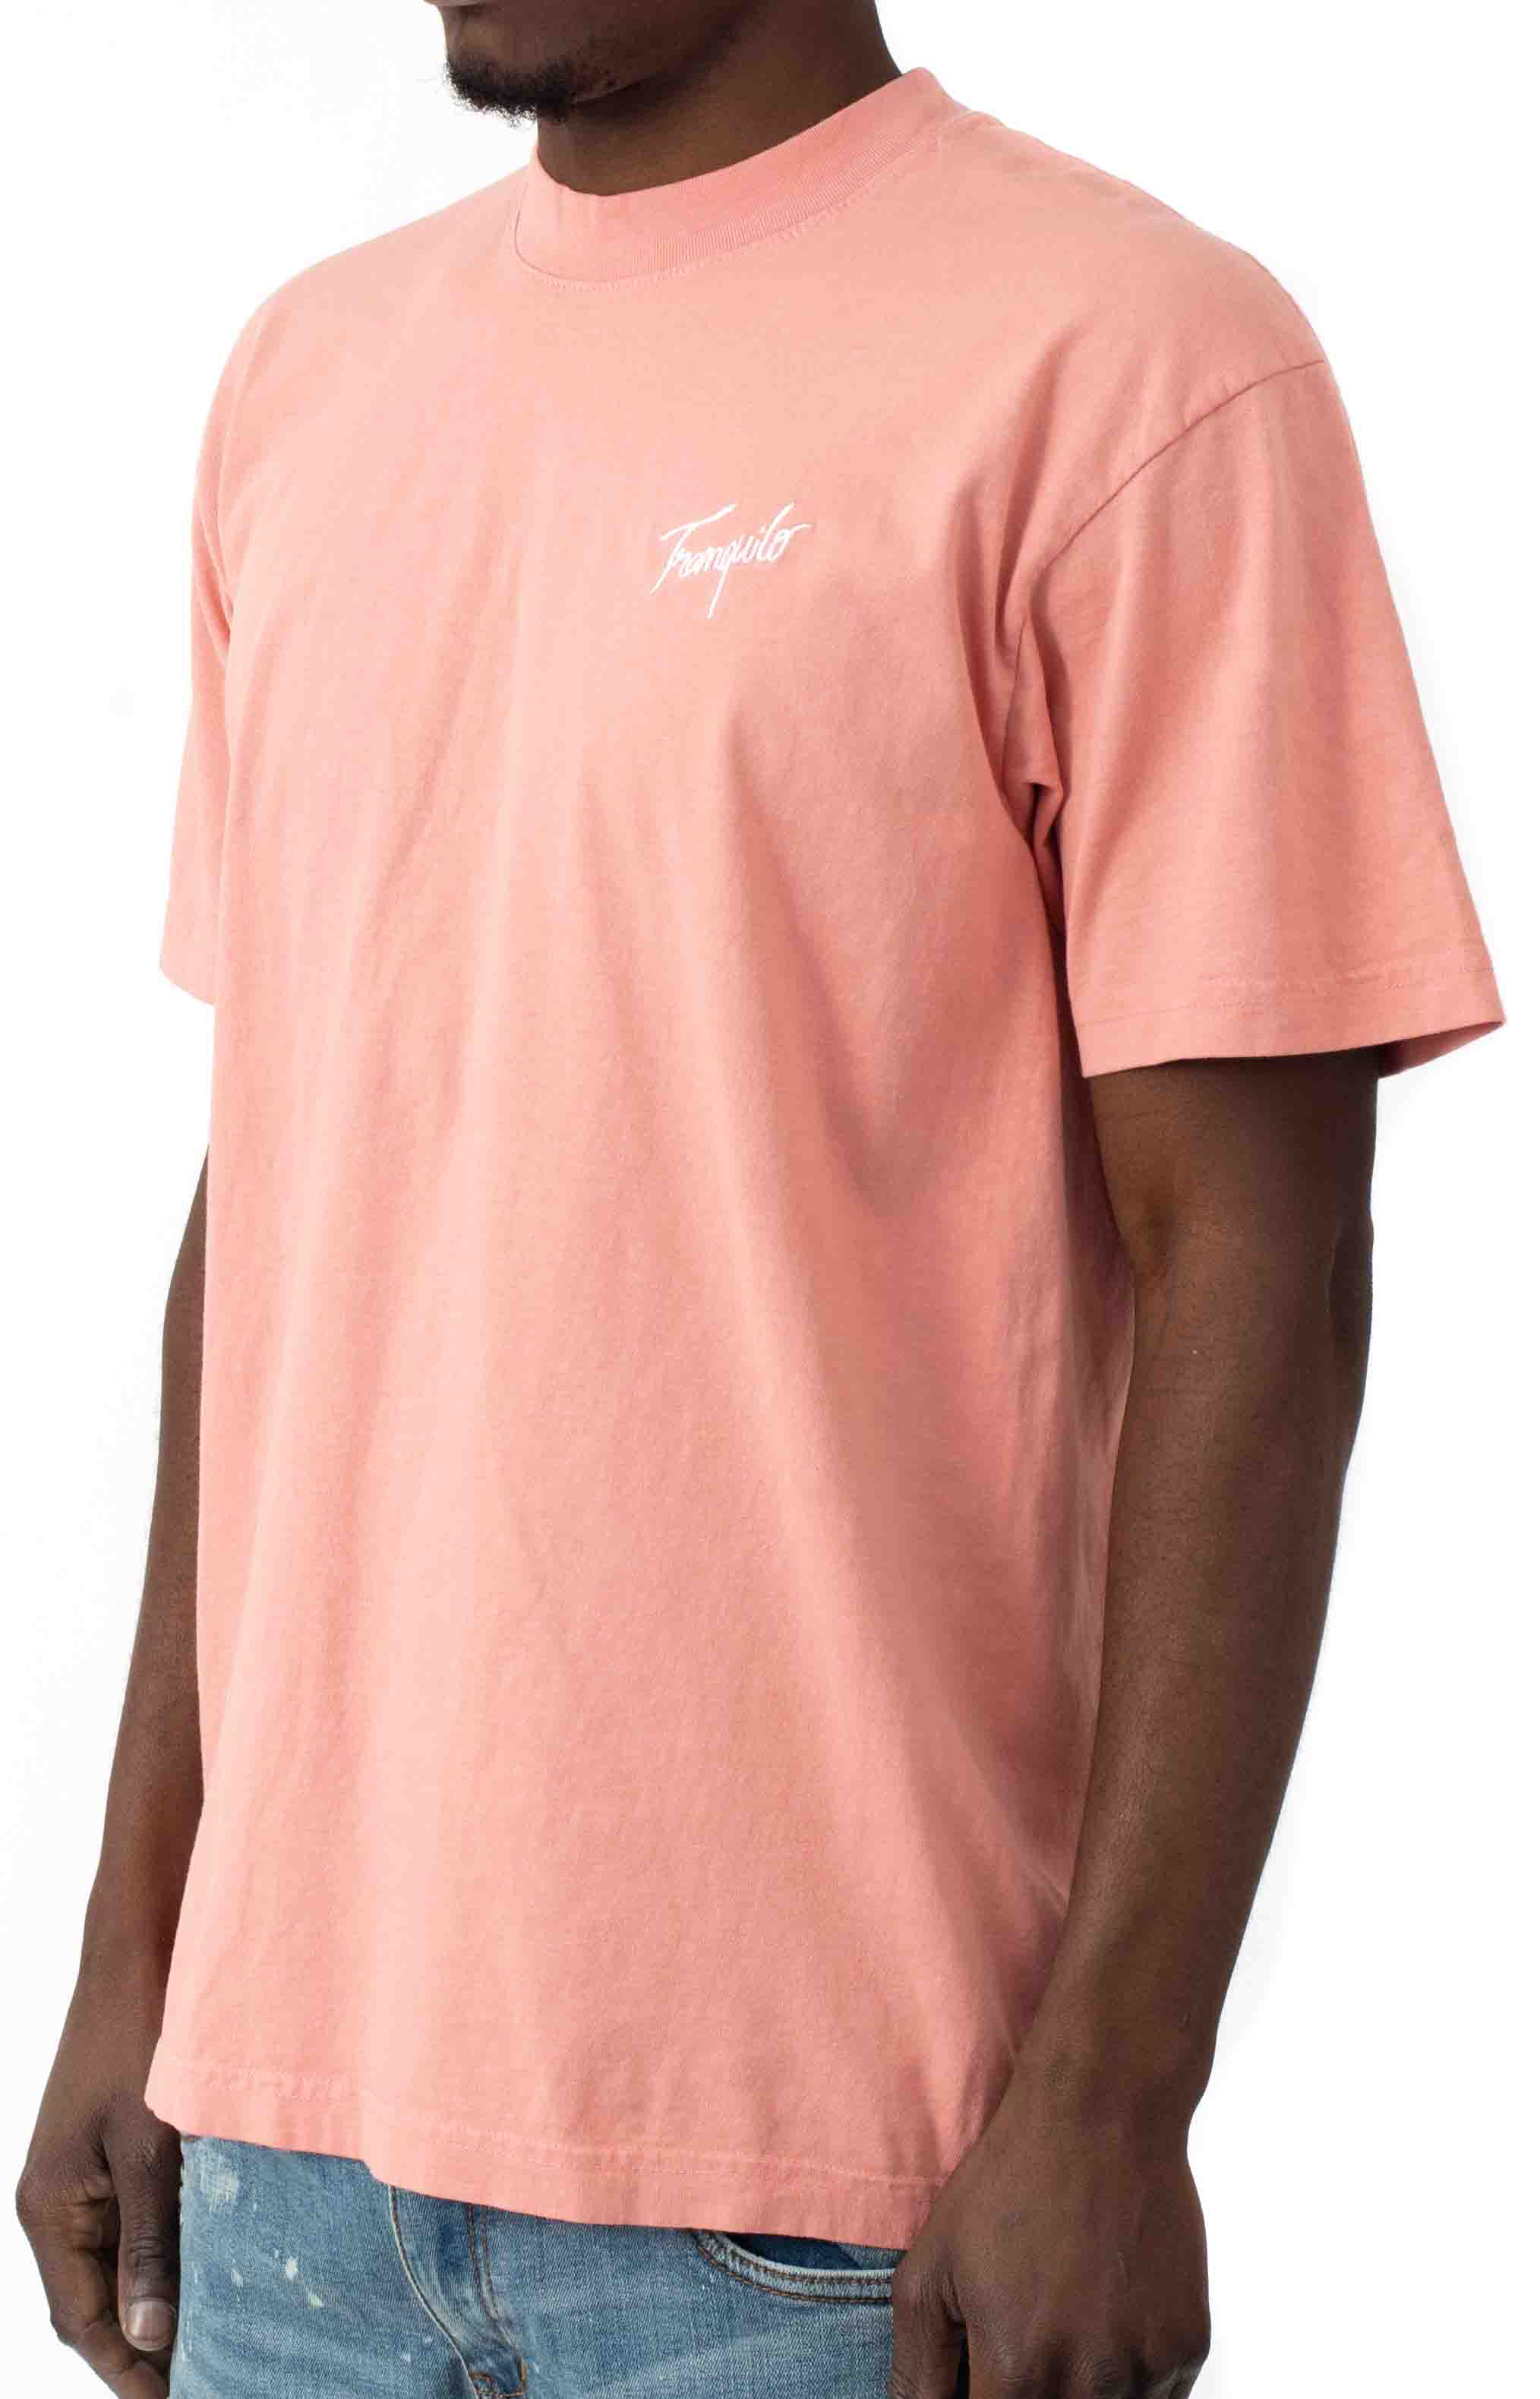 Tranquilo Embroidered T-Shirt - Peach 2